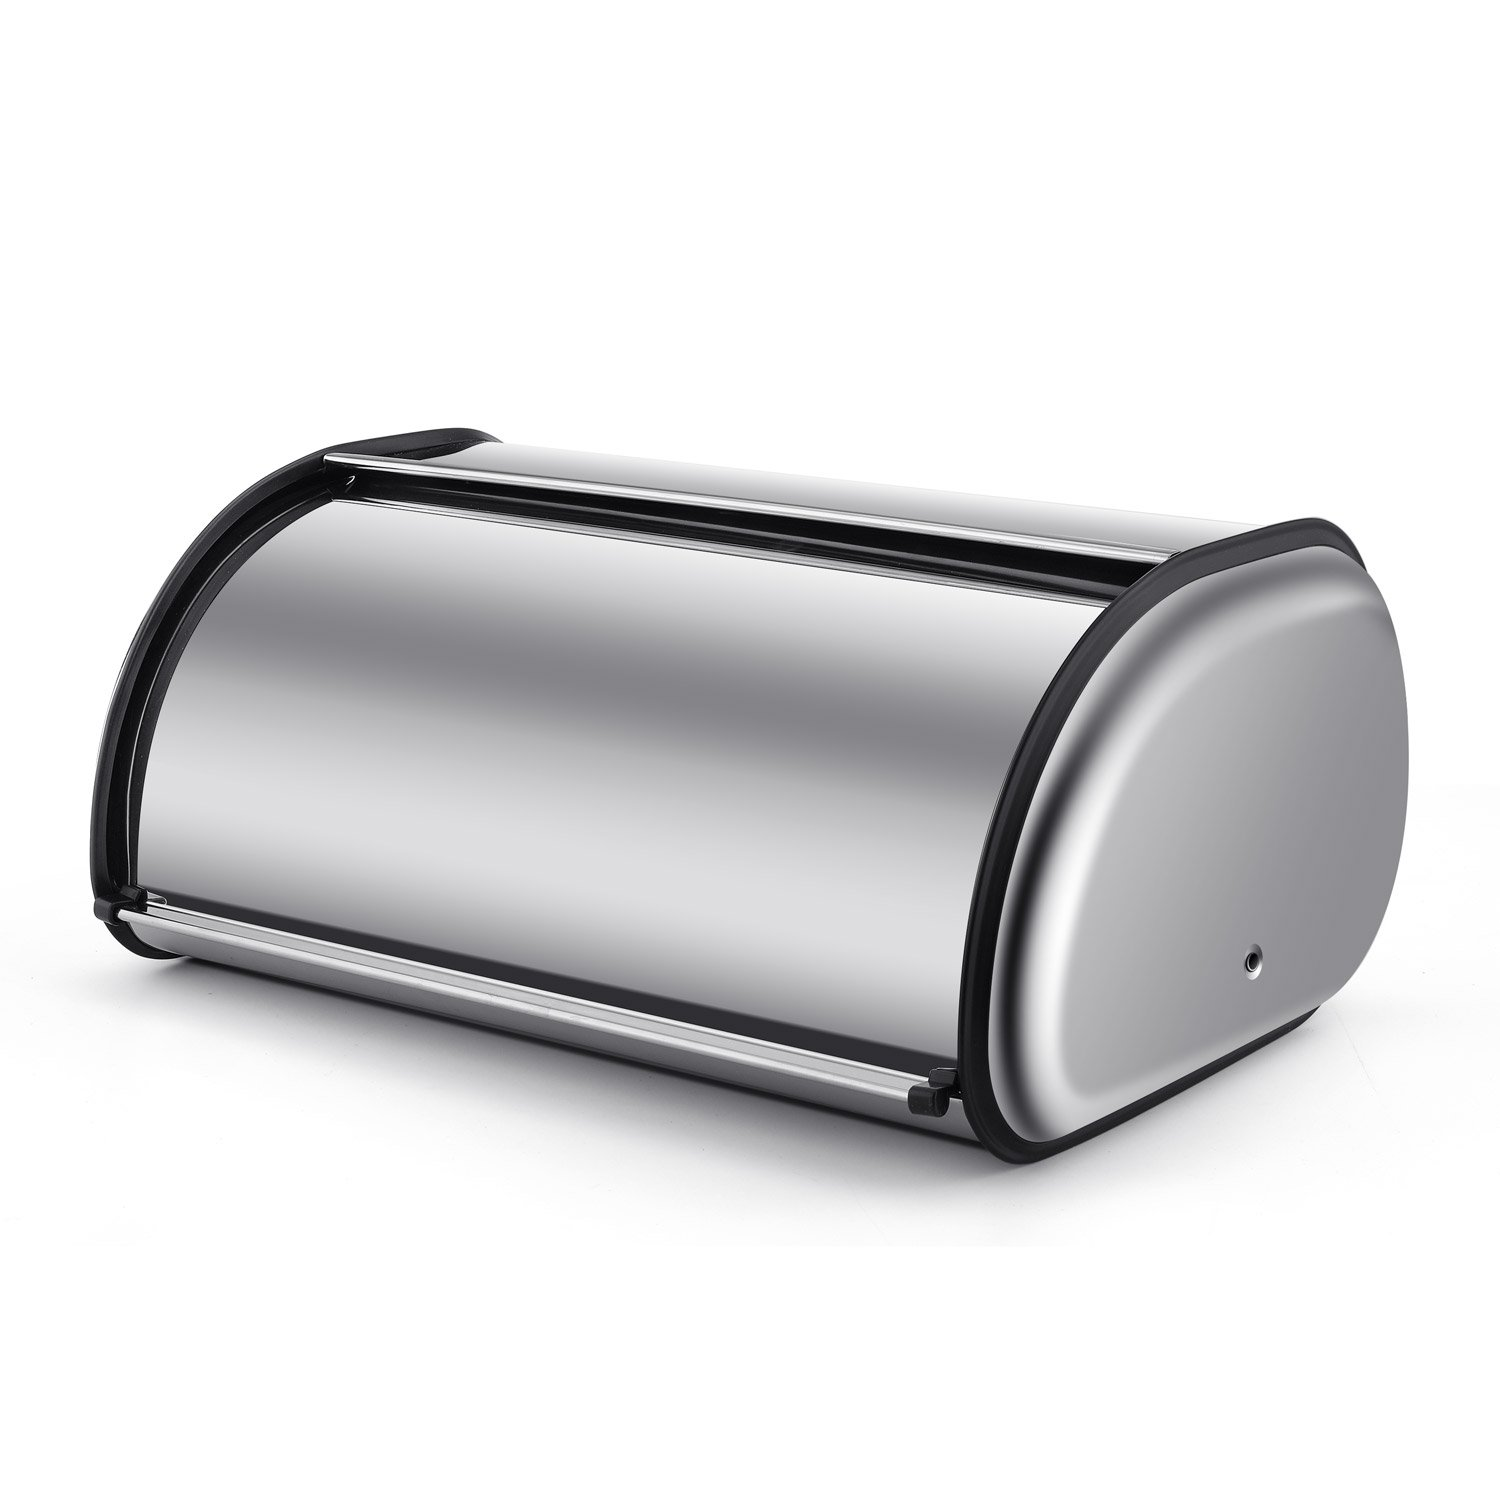 Flexzion Stainless Steel Bread Box Holder - Metal Roll Top Lid Bread Container Storage Bin Keeper for Homemade Cake Buns Food, Ideal for Kitchen Countertop Table Household